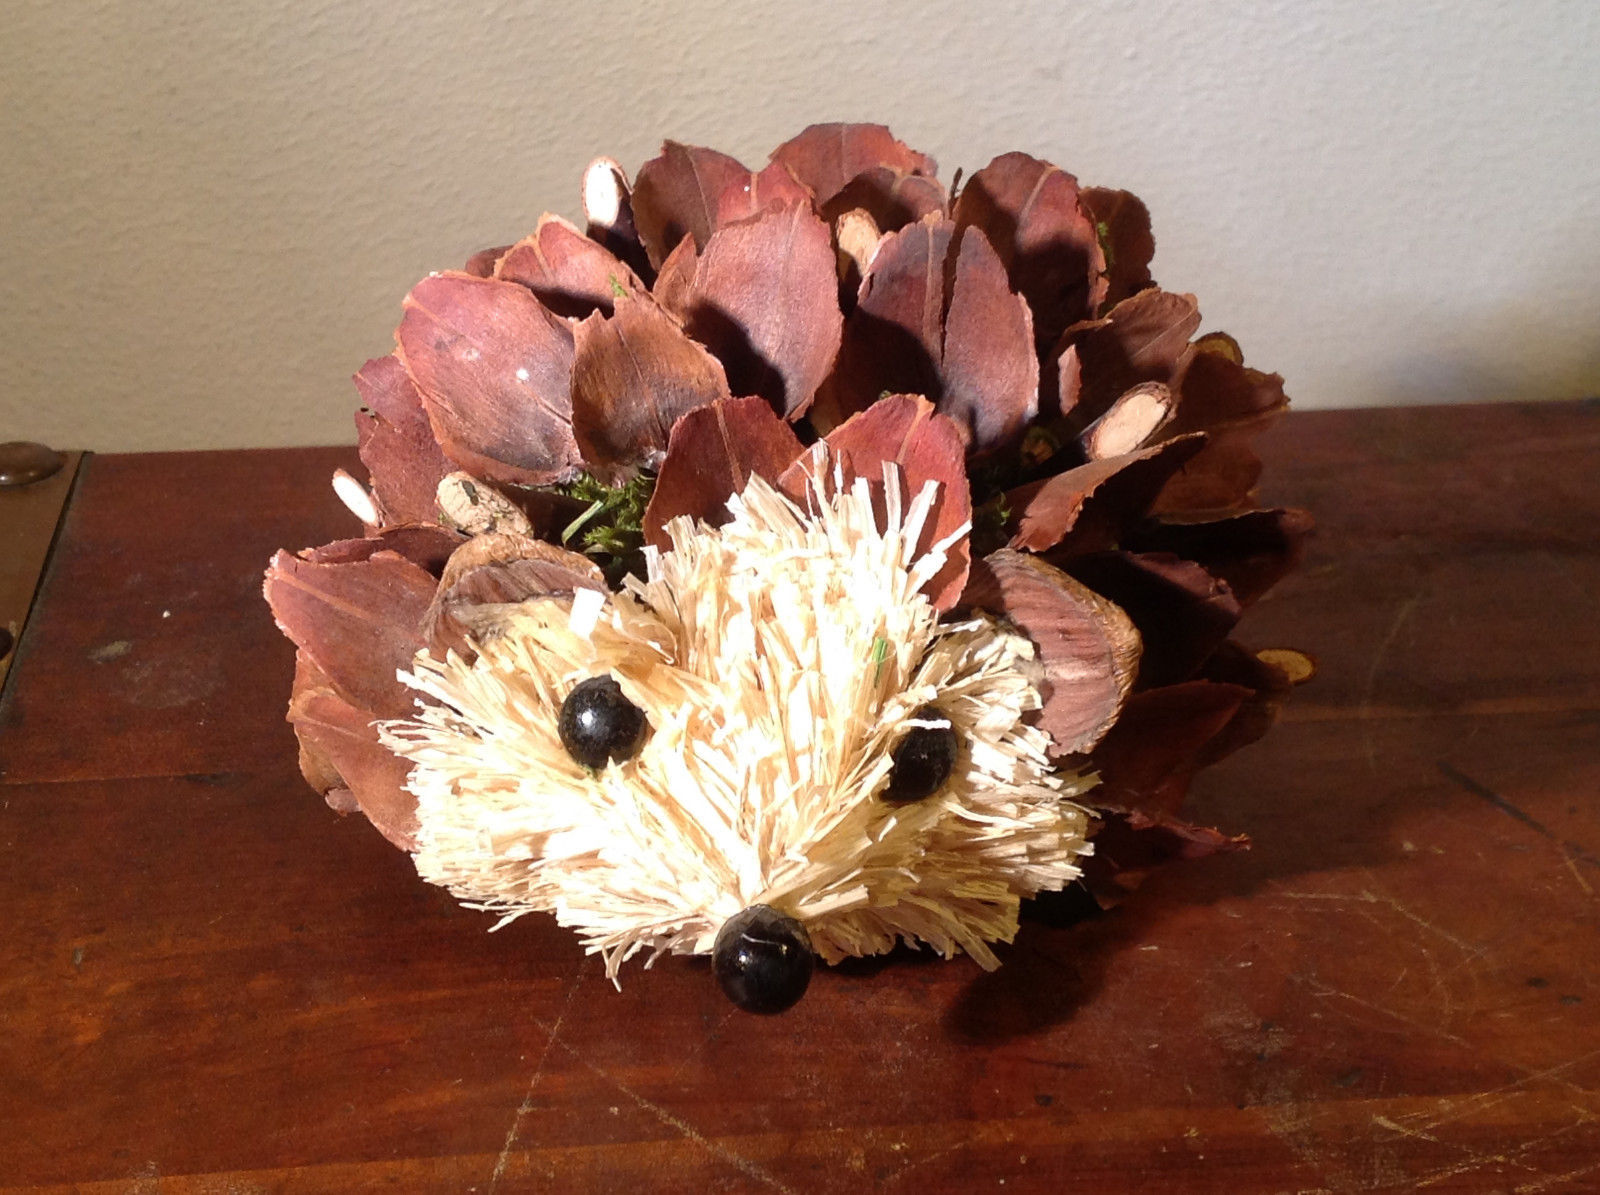 Five Inch Medium Hedgehog Decoration Cute for Display All Natural Materials